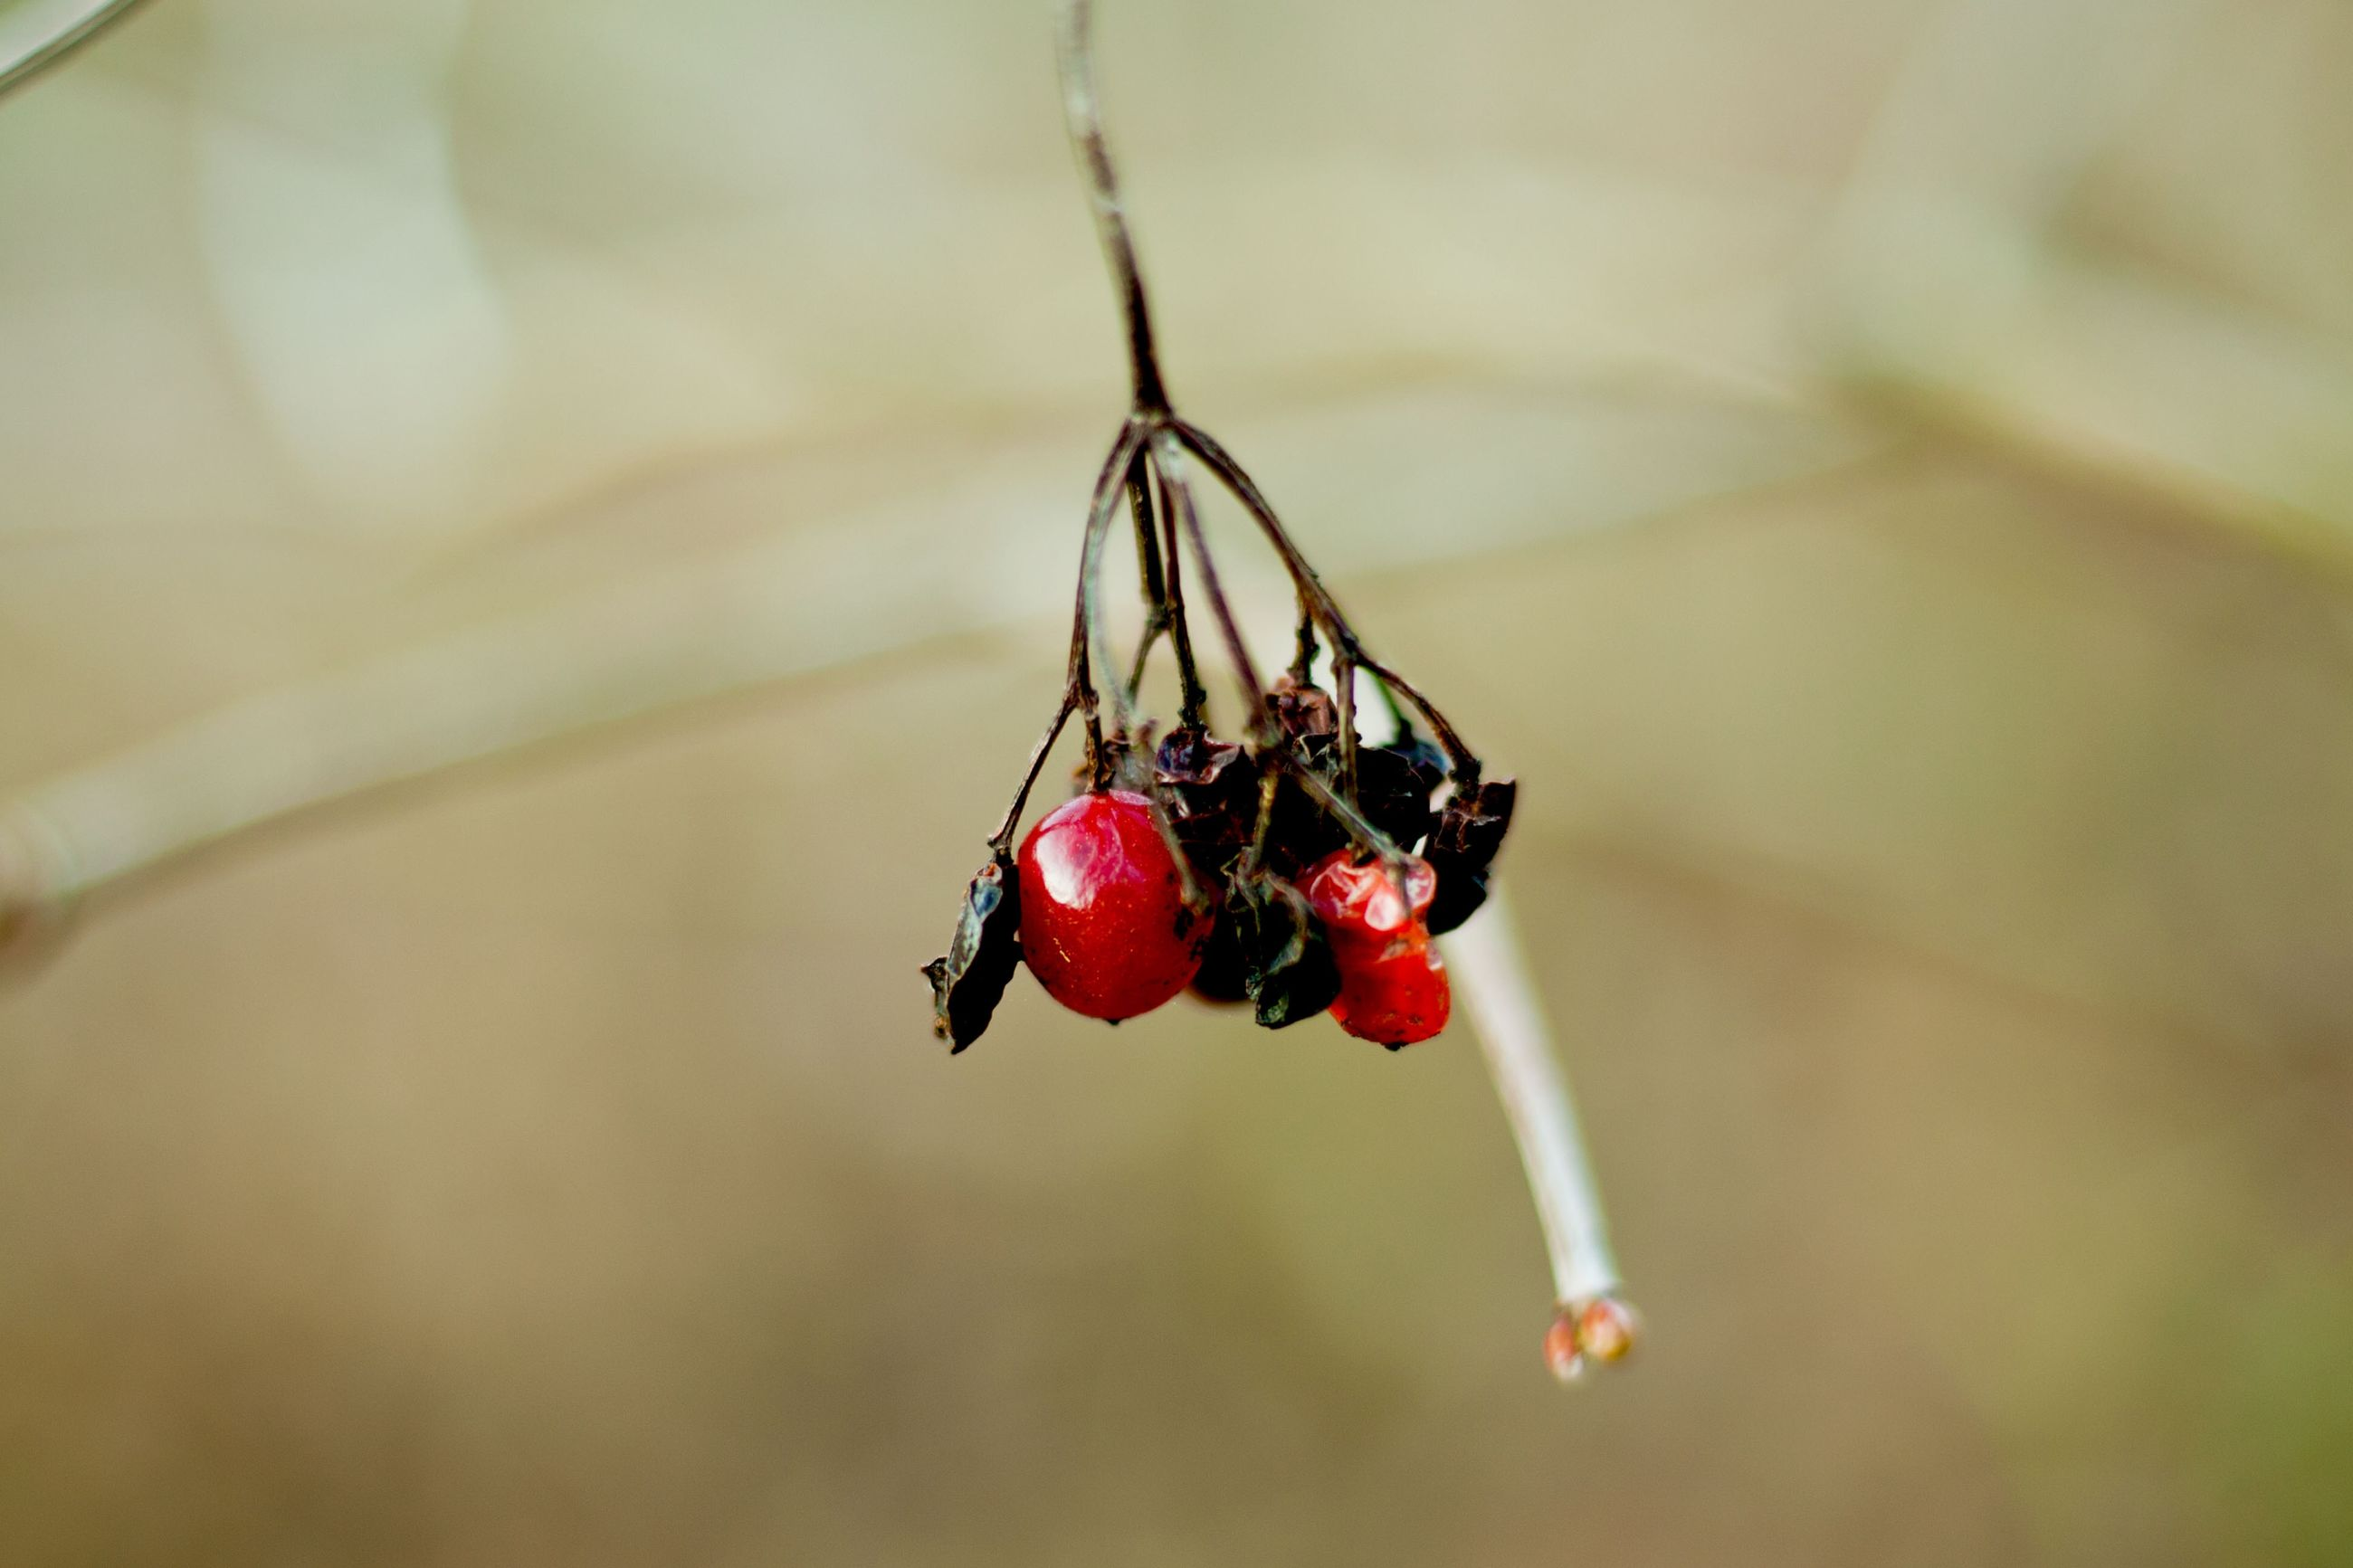 red, insect, animals in the wild, close-up, no people, animal themes, focus on foreground, day, nature, one animal, fruit, outdoors, beauty in nature